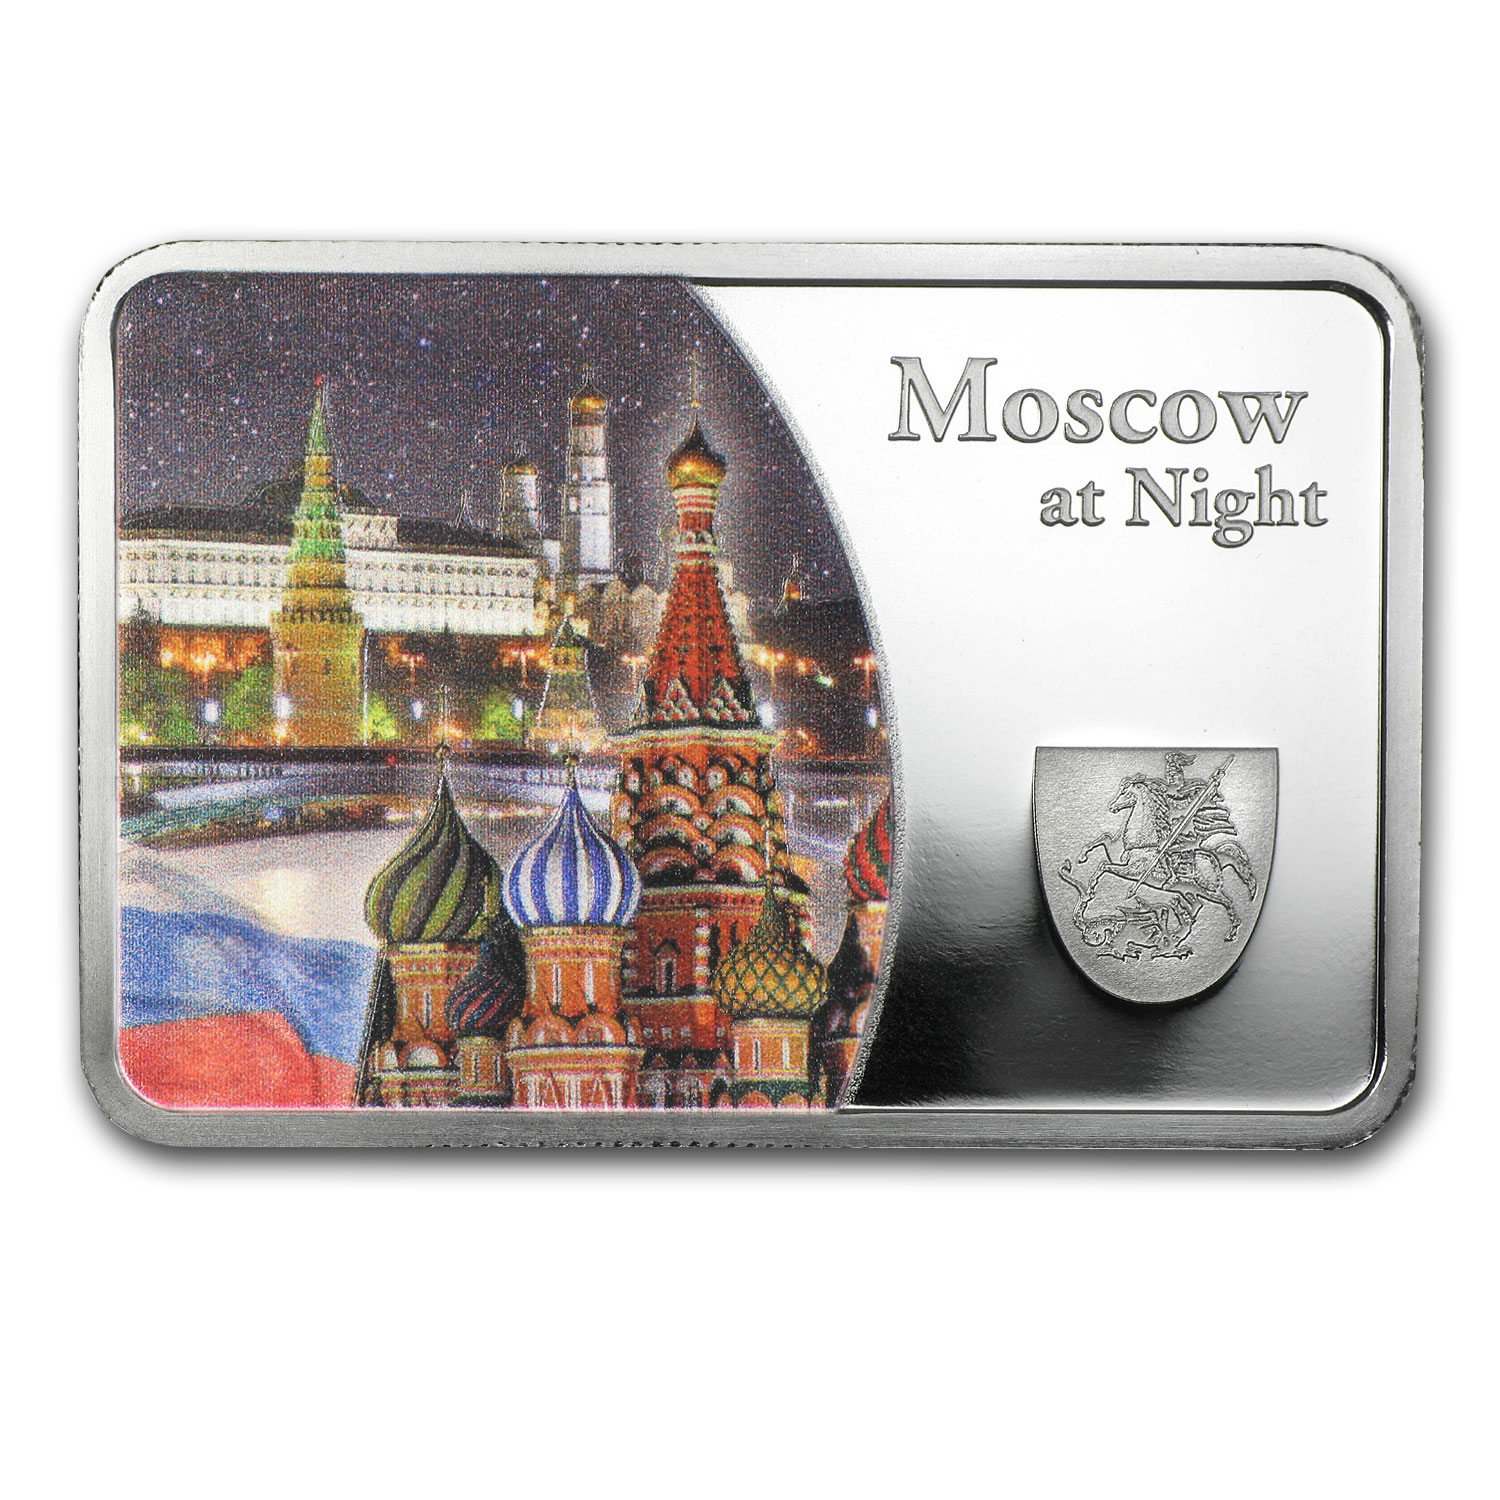 2015 Samoa Silver Moscow at Night Coin Bar Proof